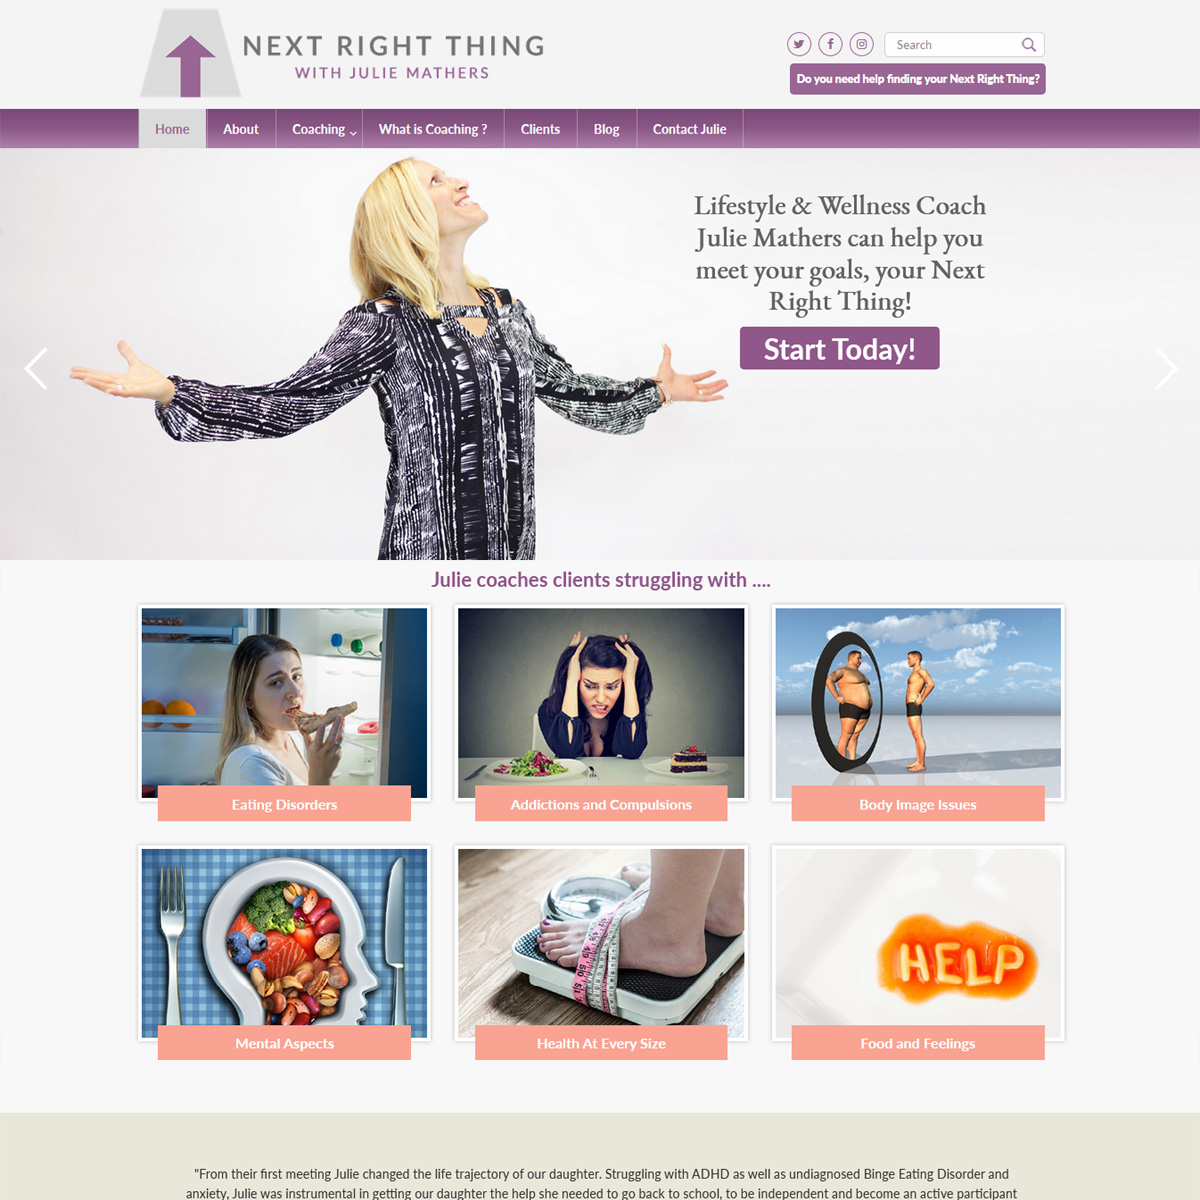 The Next Right Thing counseling website design